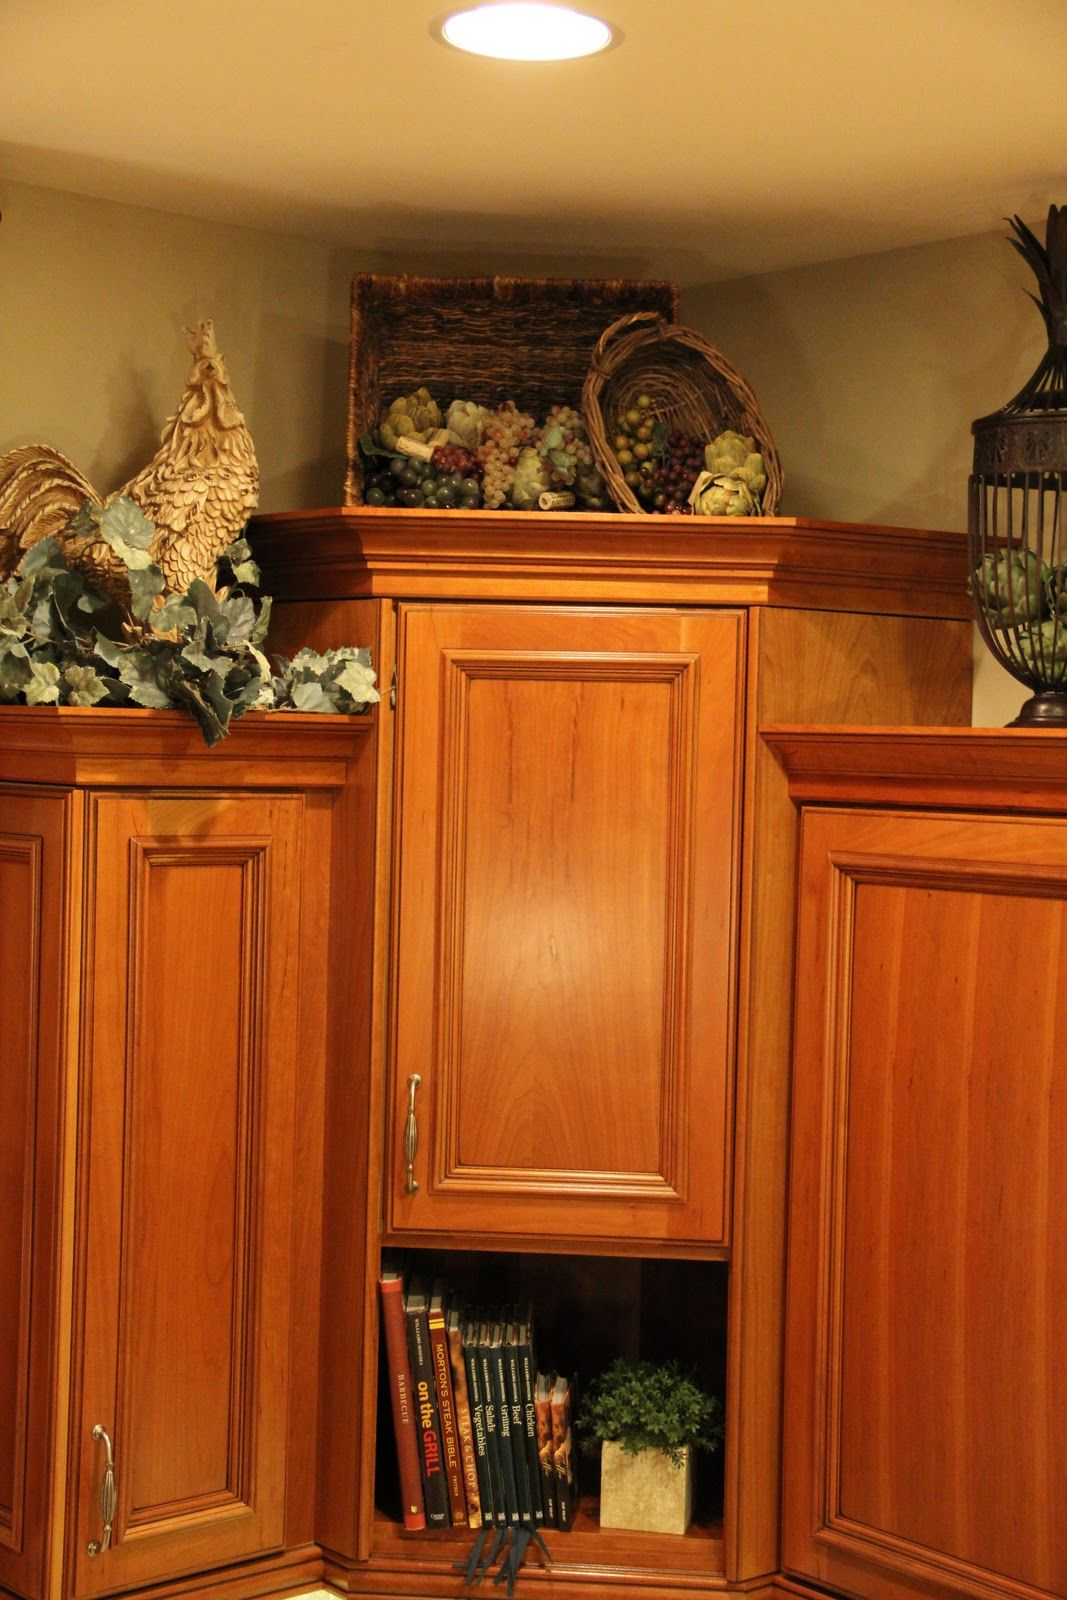 Pin By Penny Mcalpine On Tuscany Home Decor Tuscan Decorating Tuscan Kitchen Decorating Above Kitchen Cabinets